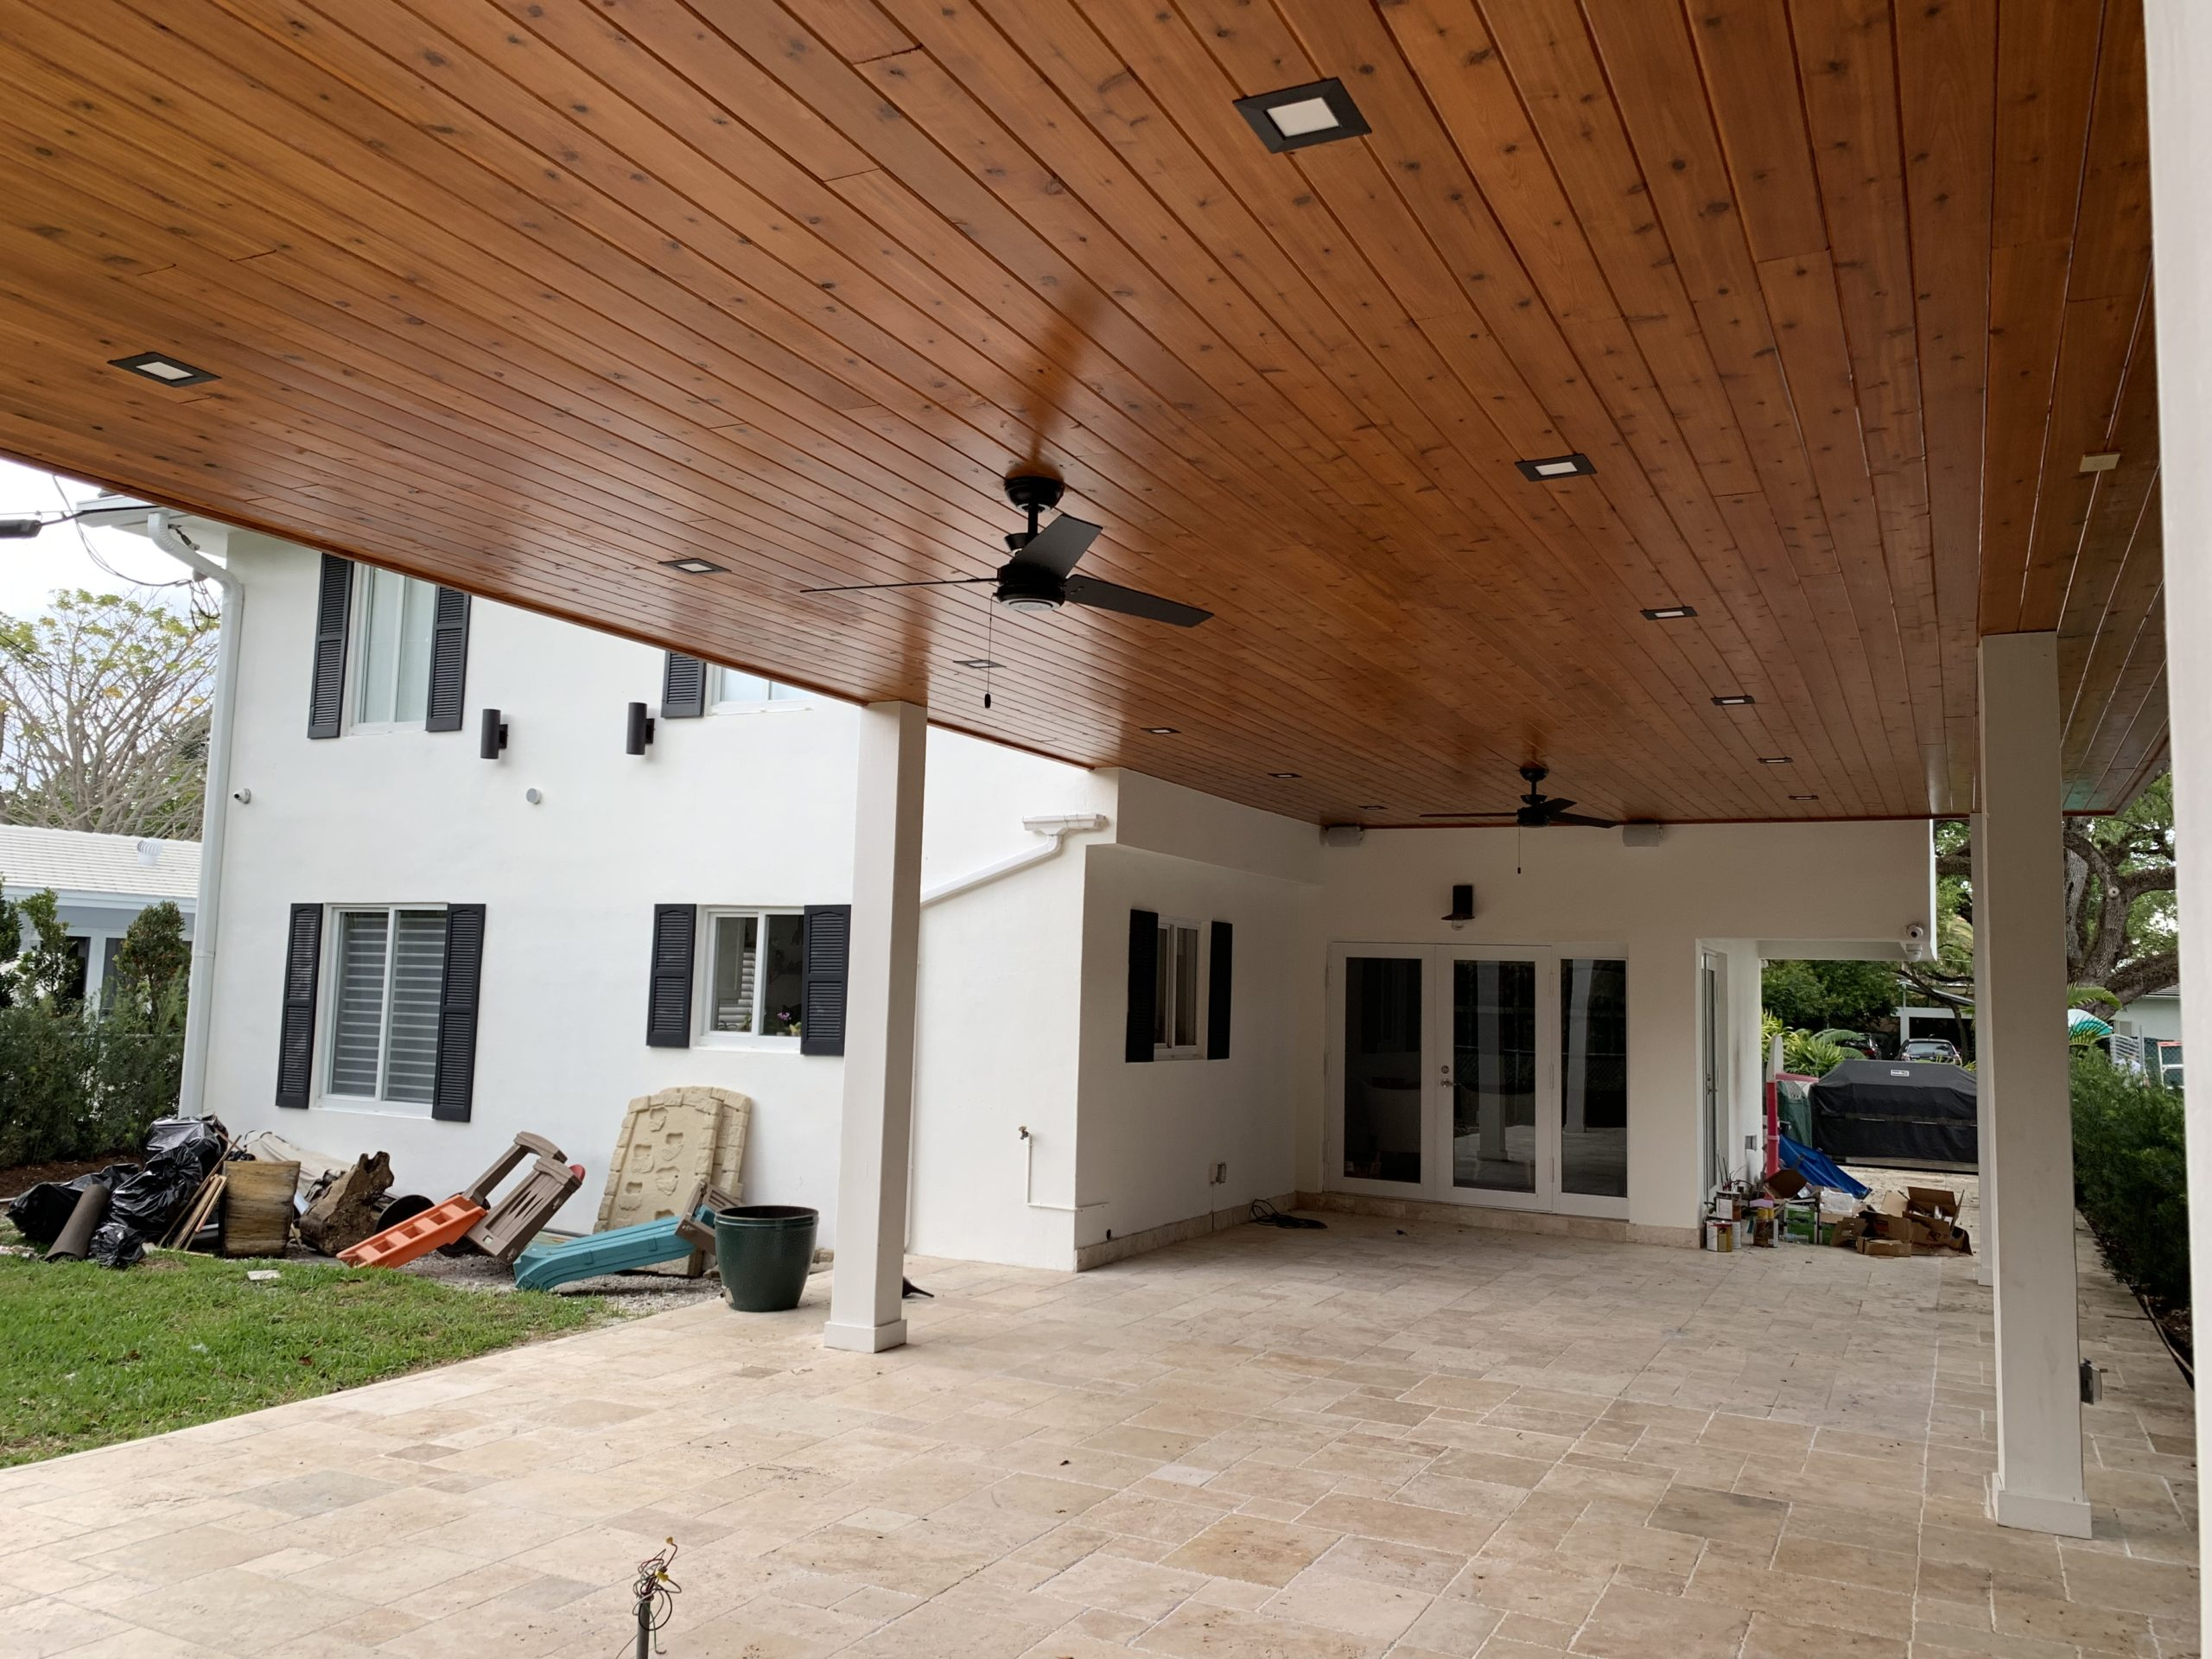 Varnished Cedar Ceiling